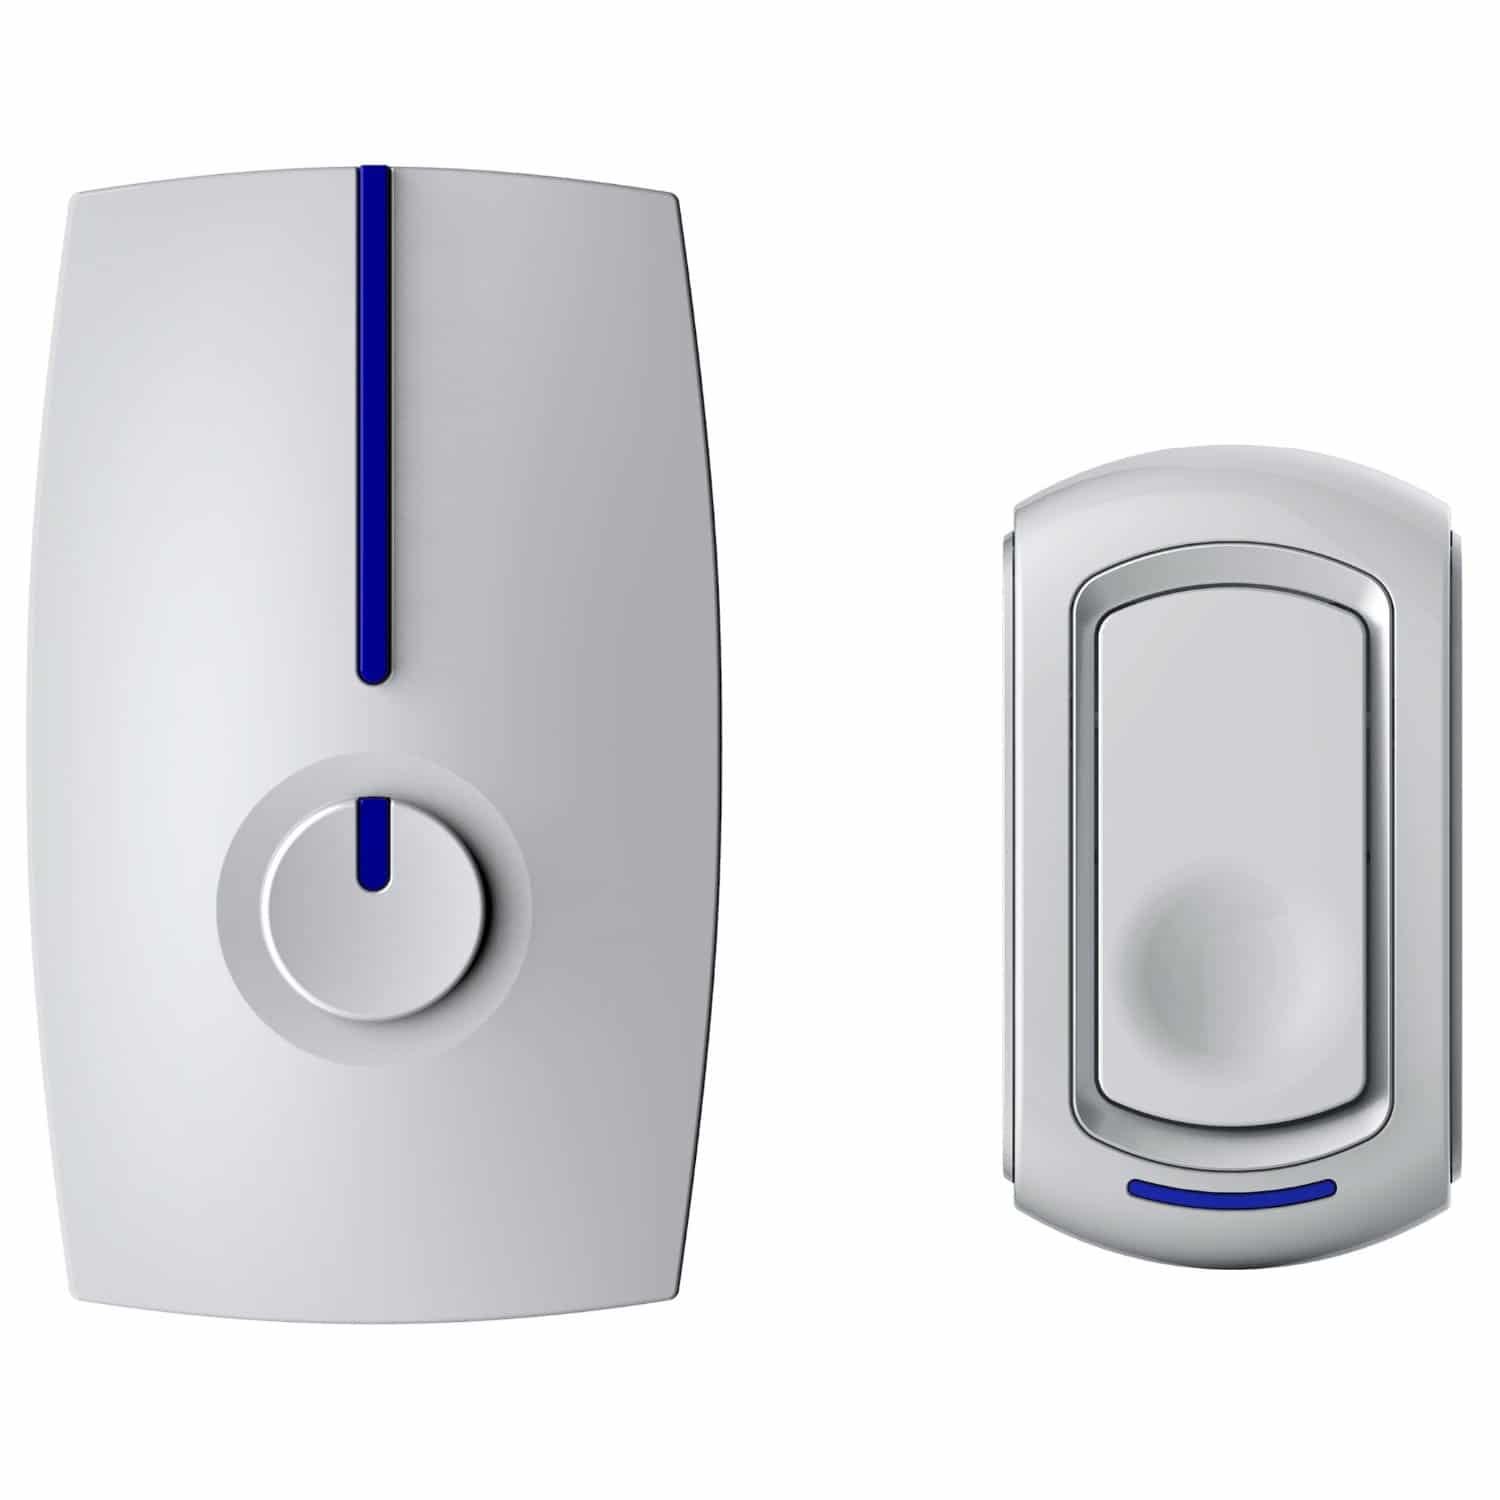 SadoTech Modern Series G Wireless Doorbell